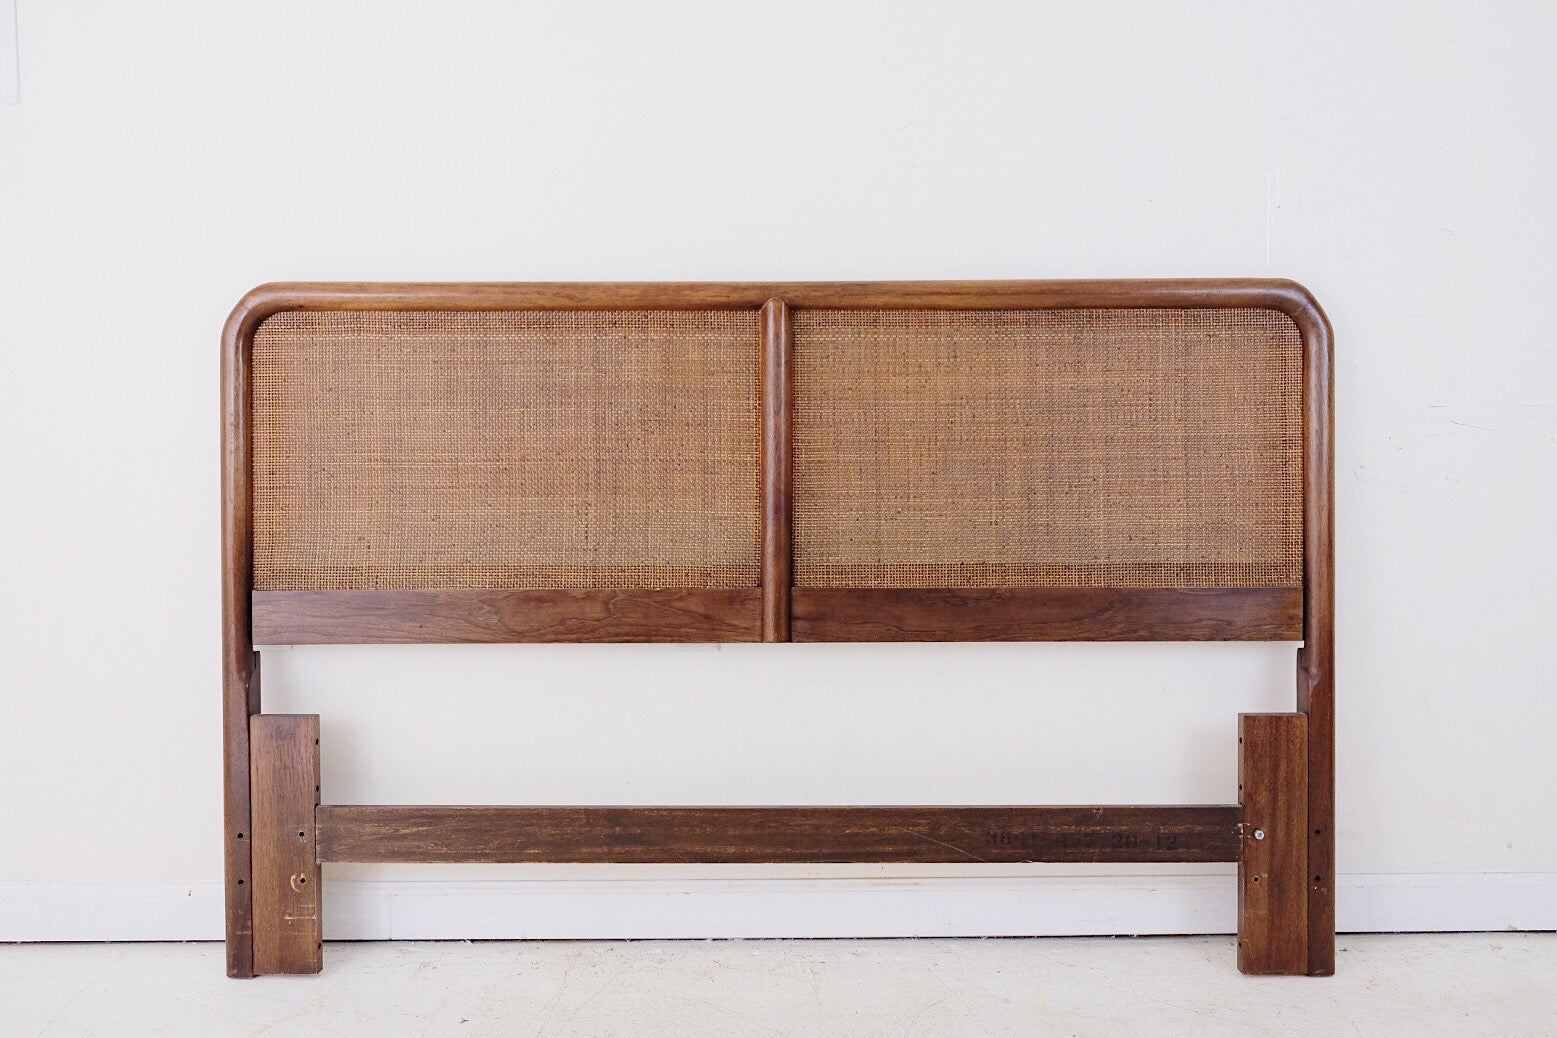 Founders Furniture Queen Headboard Caned Mid Century Modern Atomic Glam Minimalistic Zen